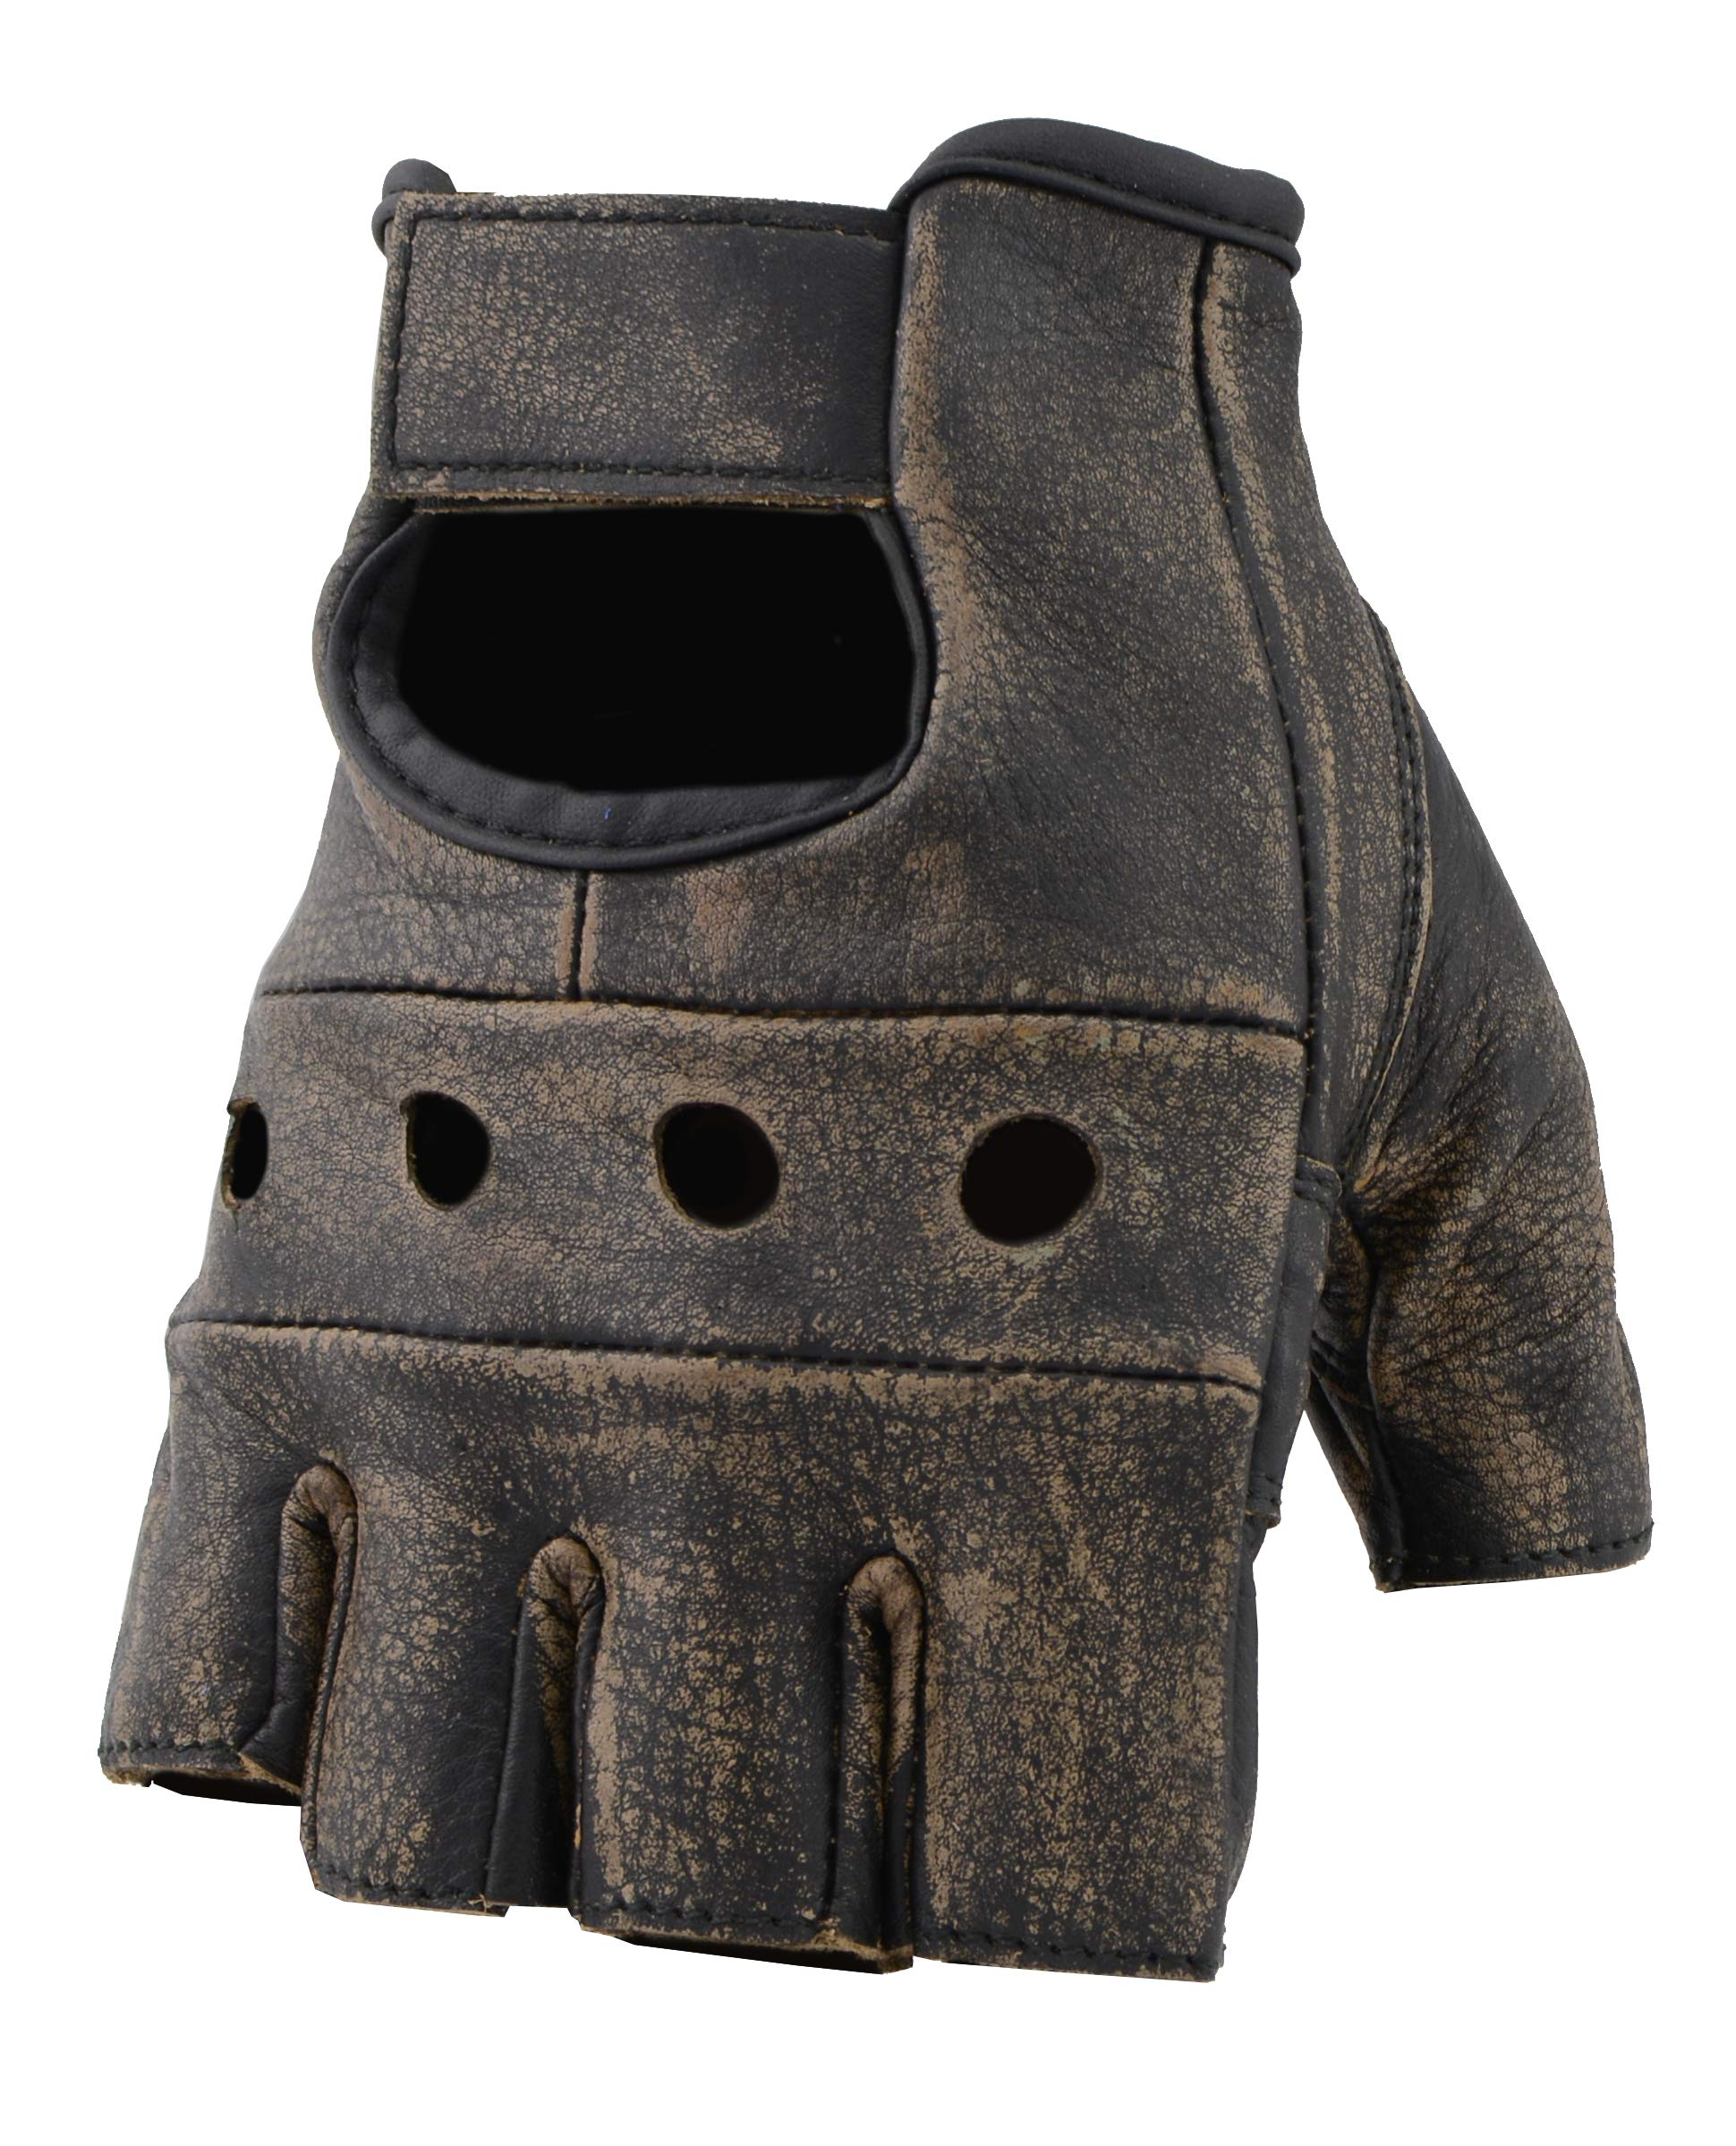 The Bikers Zone Women's Leather Fingerless Gloves, Soft Lambskin Leather (Distressed Brown, S)